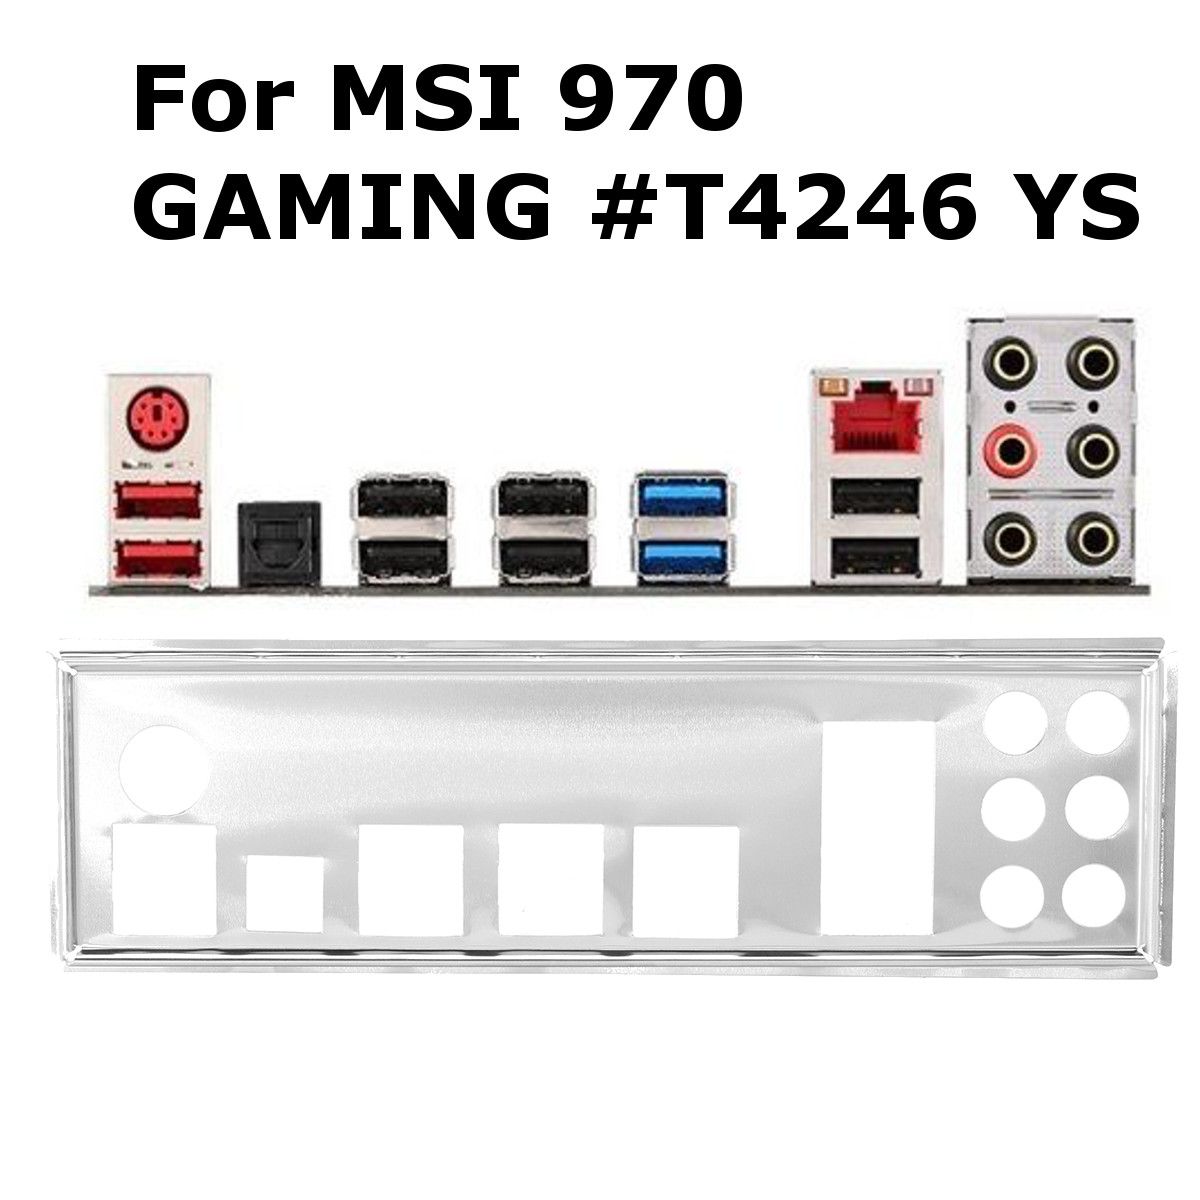 Details about Shield Backplate Bracket Motherboard For MSI IO I/O MSI 970  GAMING #T4246 YS AU